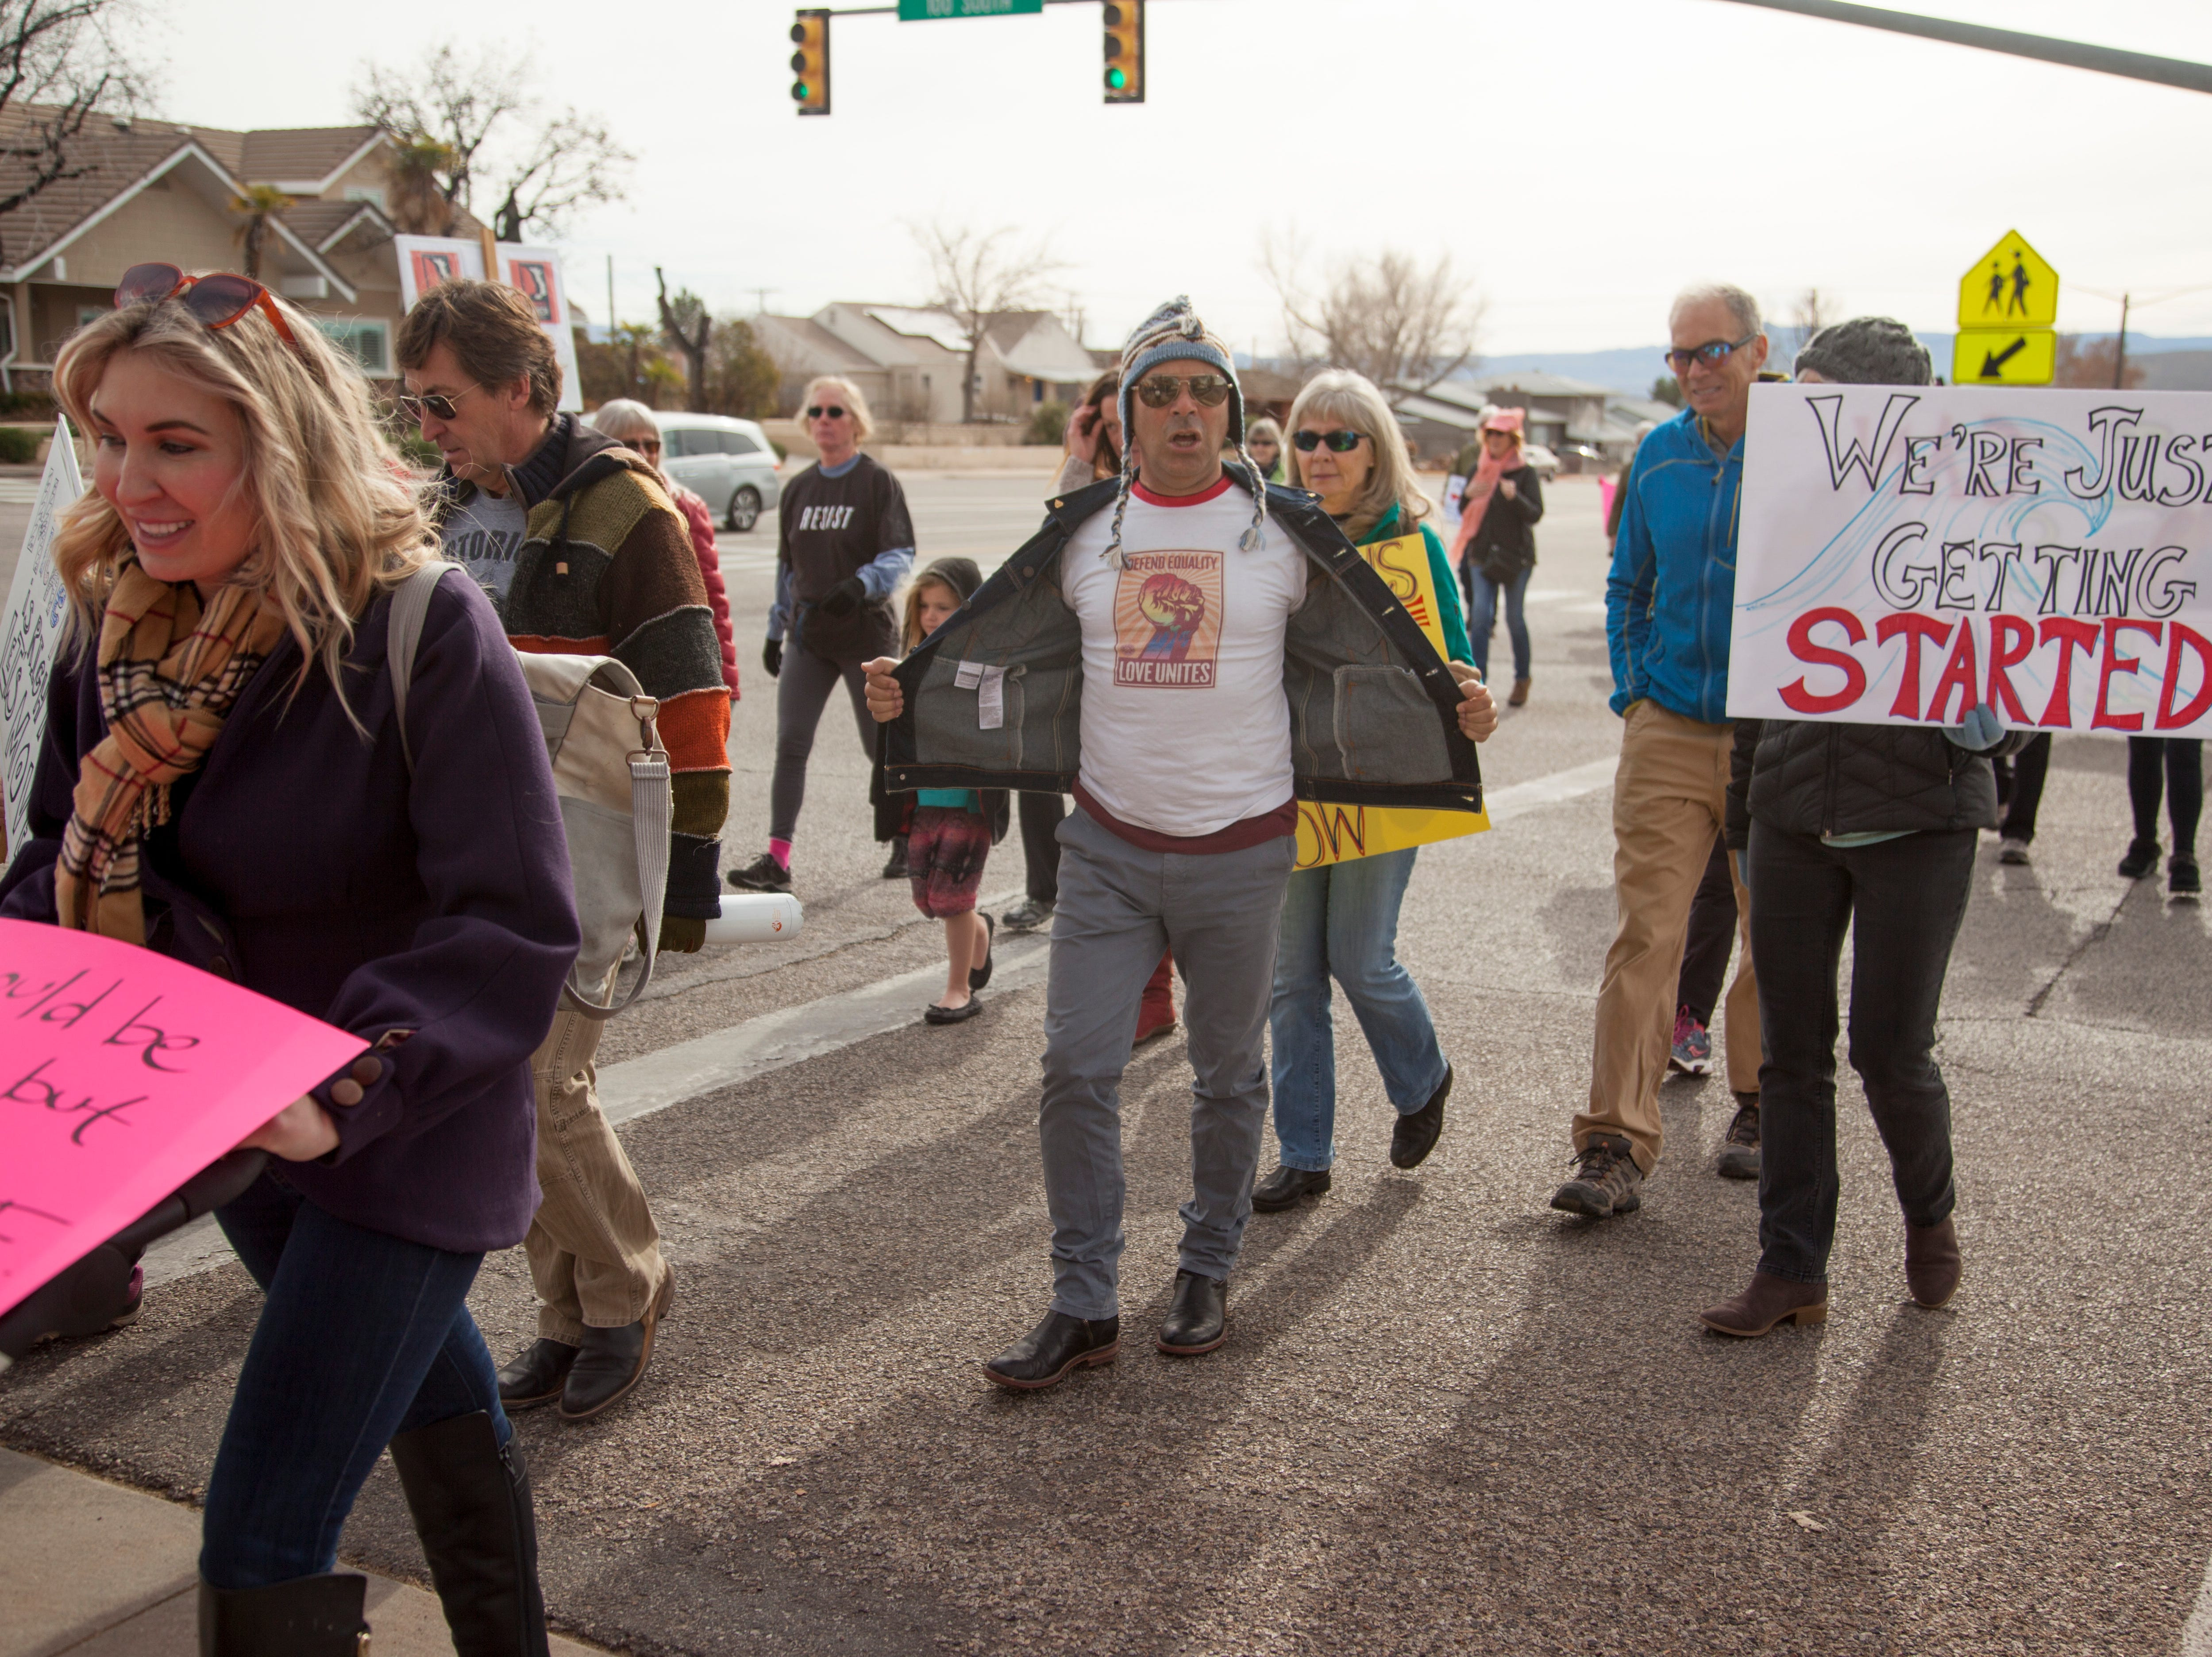 Members of the community participate in the St. George Women's March Saturday, Jan. 19, 2019.